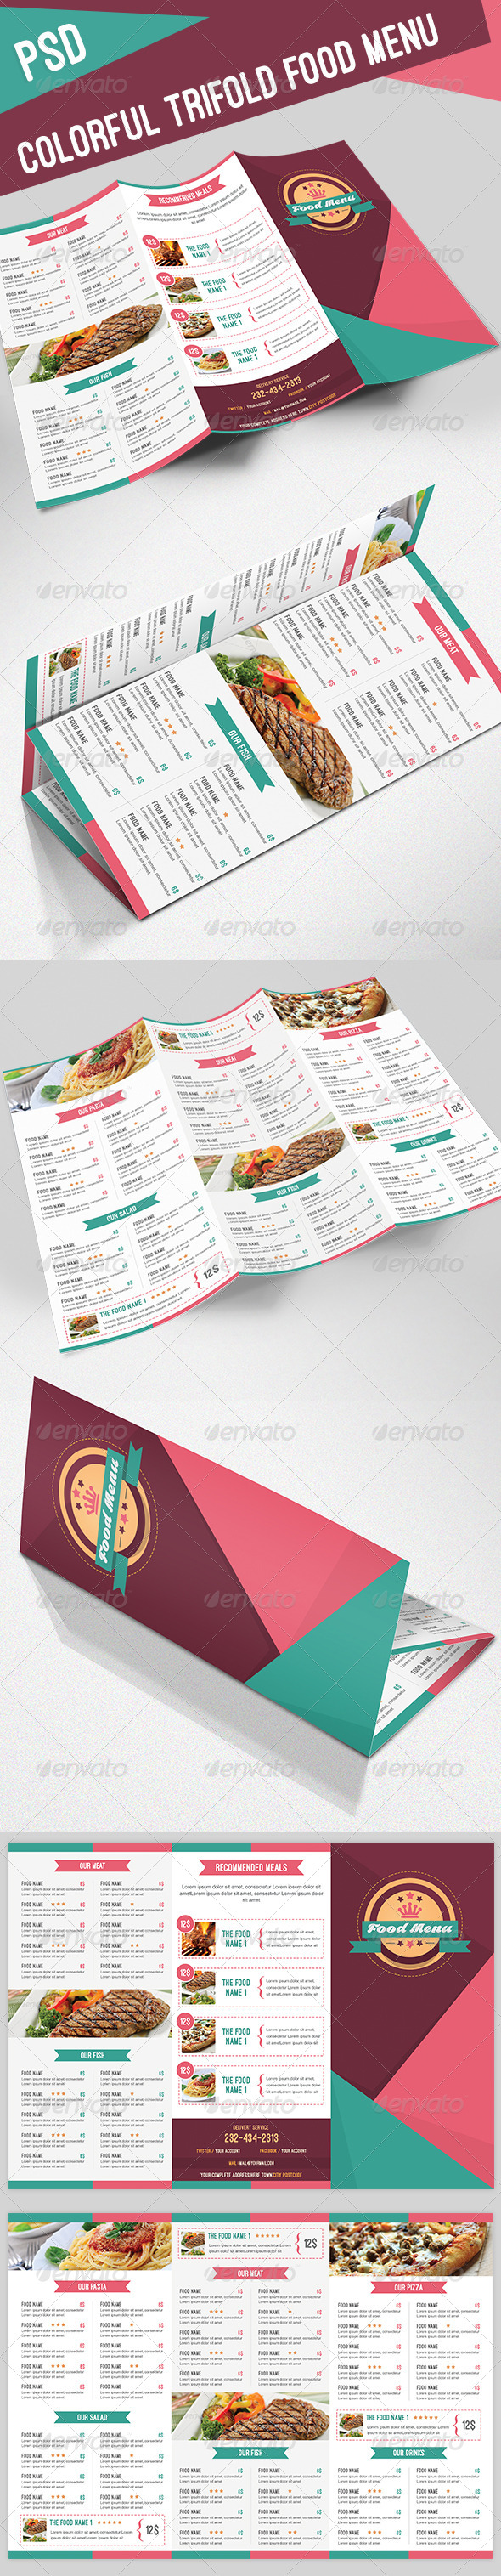 Colorful Trifold Food Menu